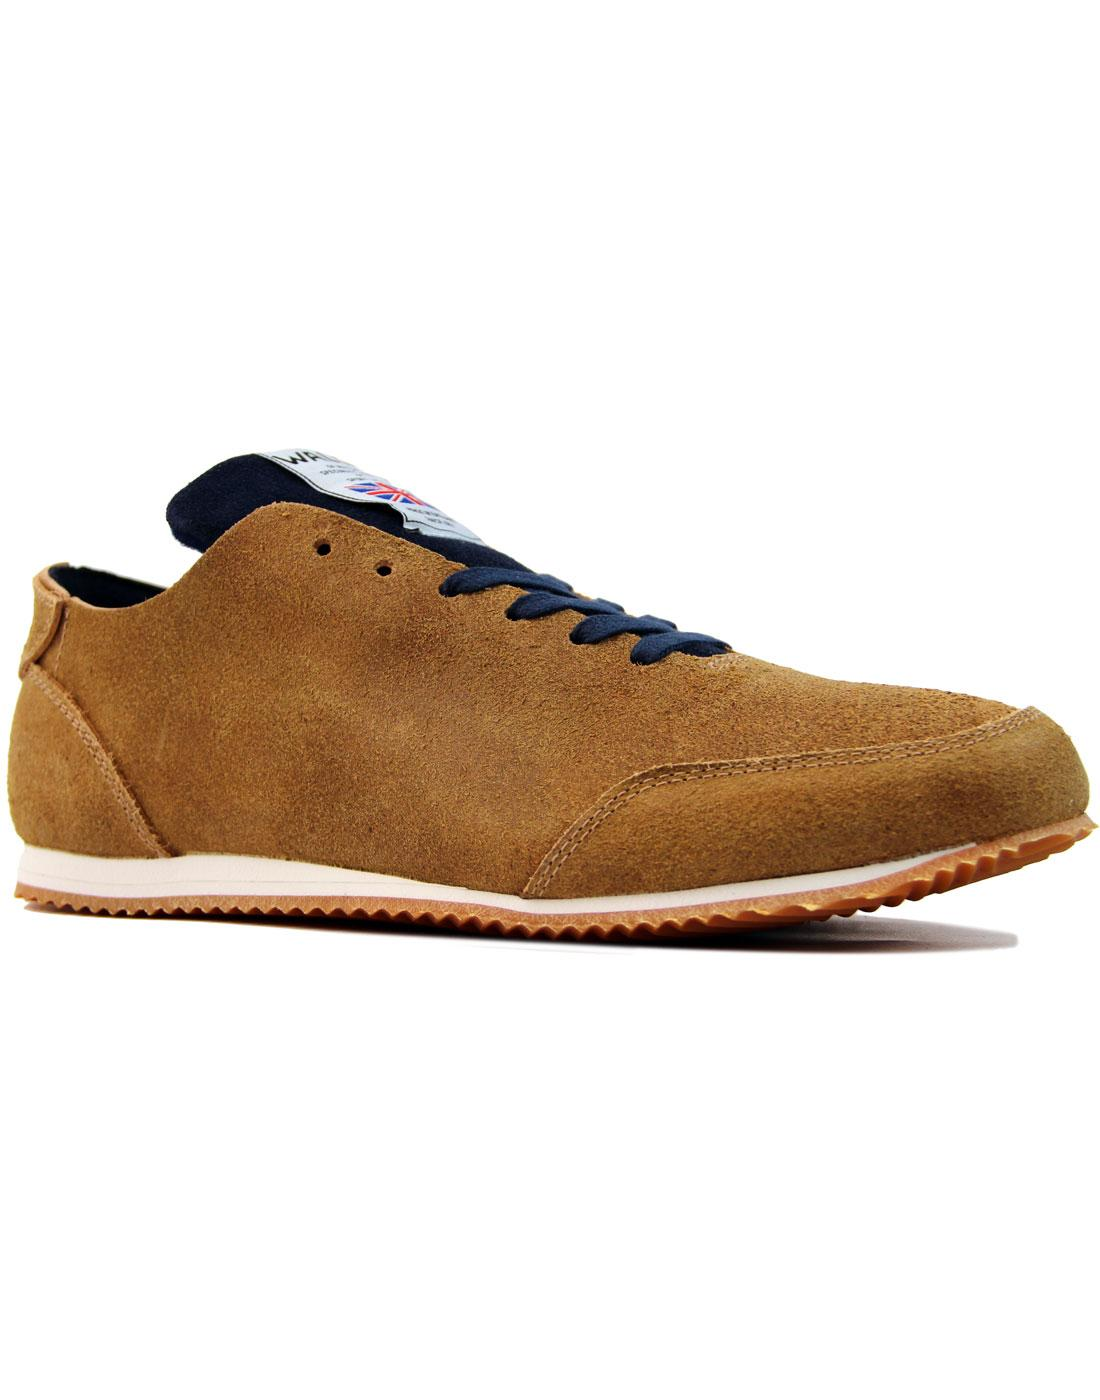 Gymmie WALSH Made in England Veg Tan Trainers (C)